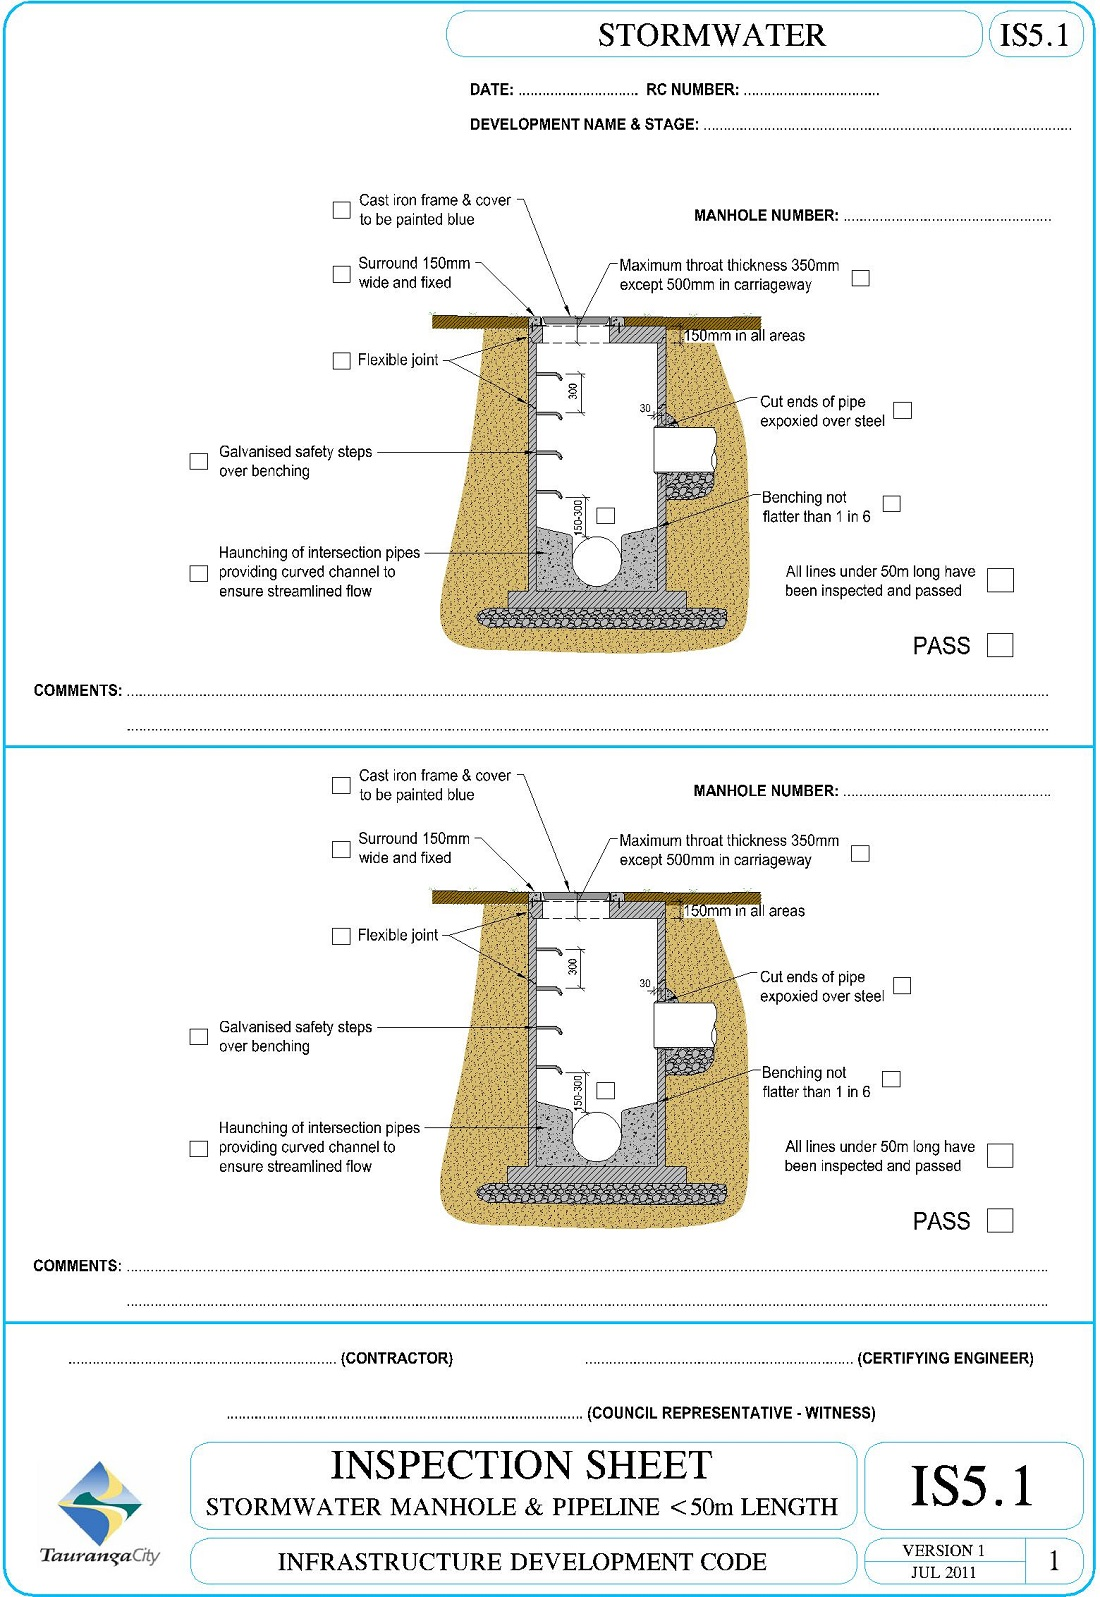 IS5.1 Inspection Sheet - Stormwater Manhole & Pipeline <50m Length